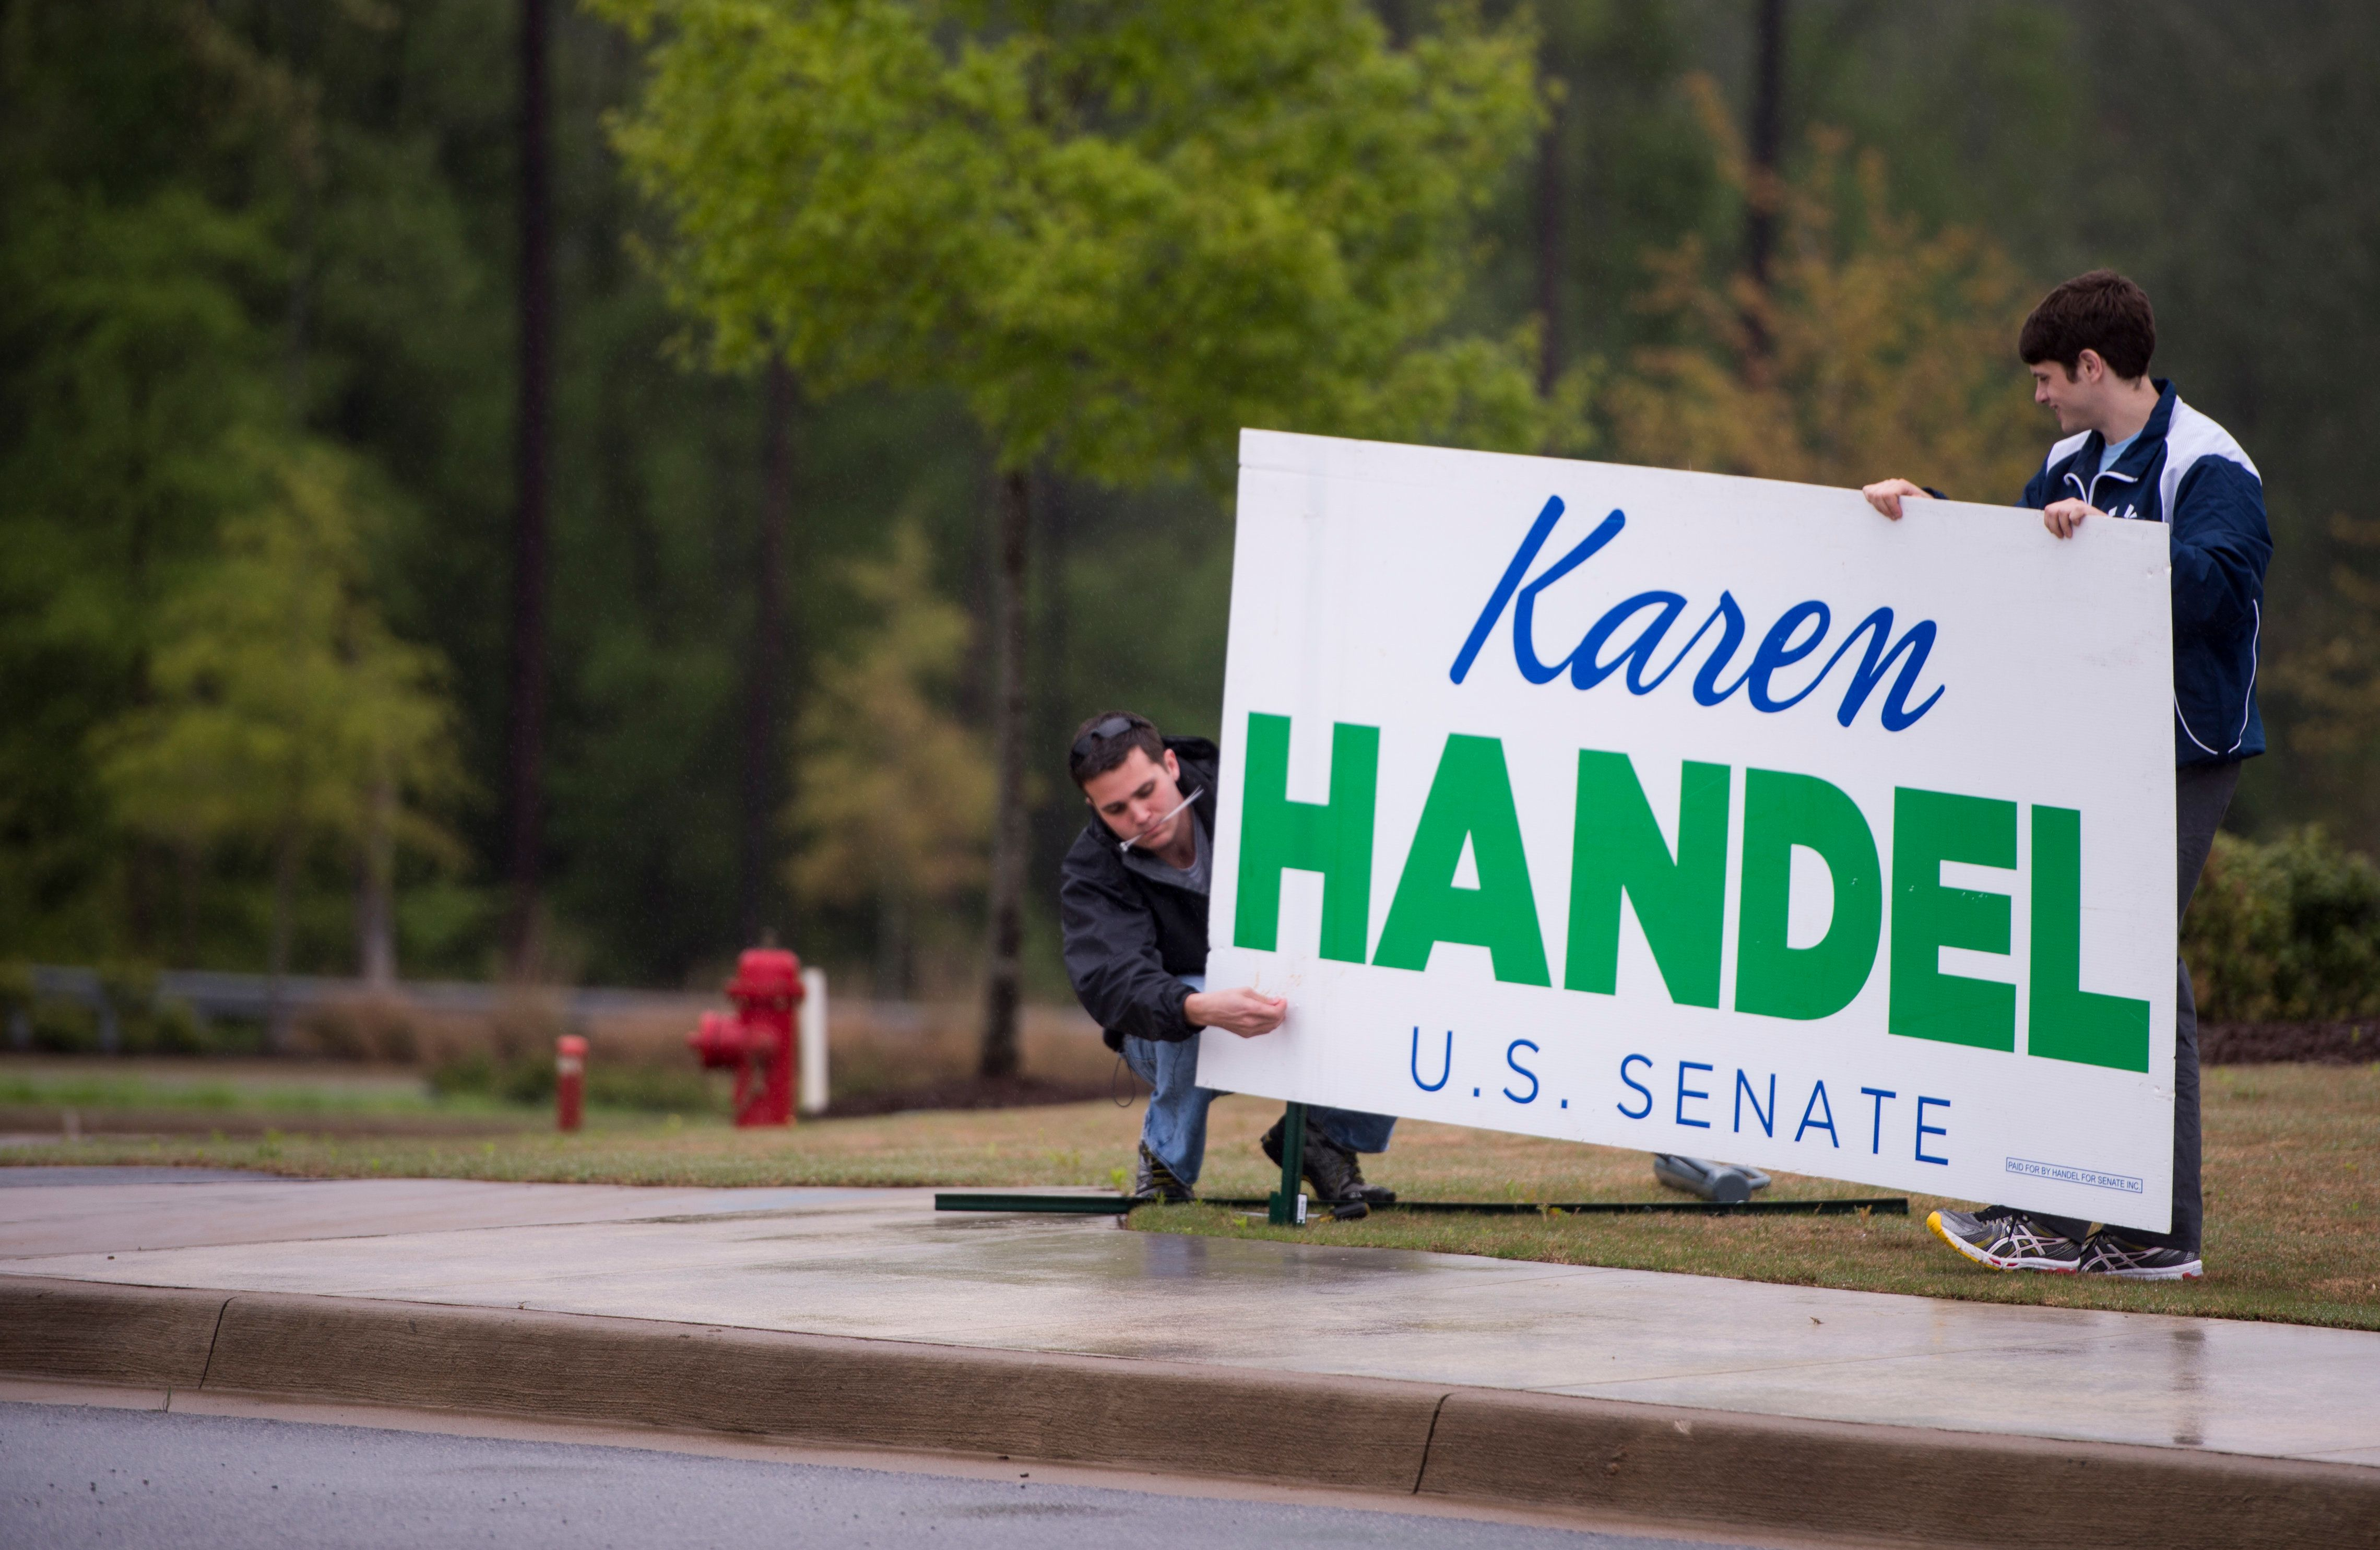 UNITED STATES - APRIL 19: Karen Handel campaign workers erect a campaign sign before the debate of Republican candidates vying for Georgia's open U.S. Senate seat at the Columbia County Exhibition Center in Grovetown, Ga., outside of Augusta, on Saturday, April 19, 2014.  (Photo By Bill Clark/CQ Roll Call)